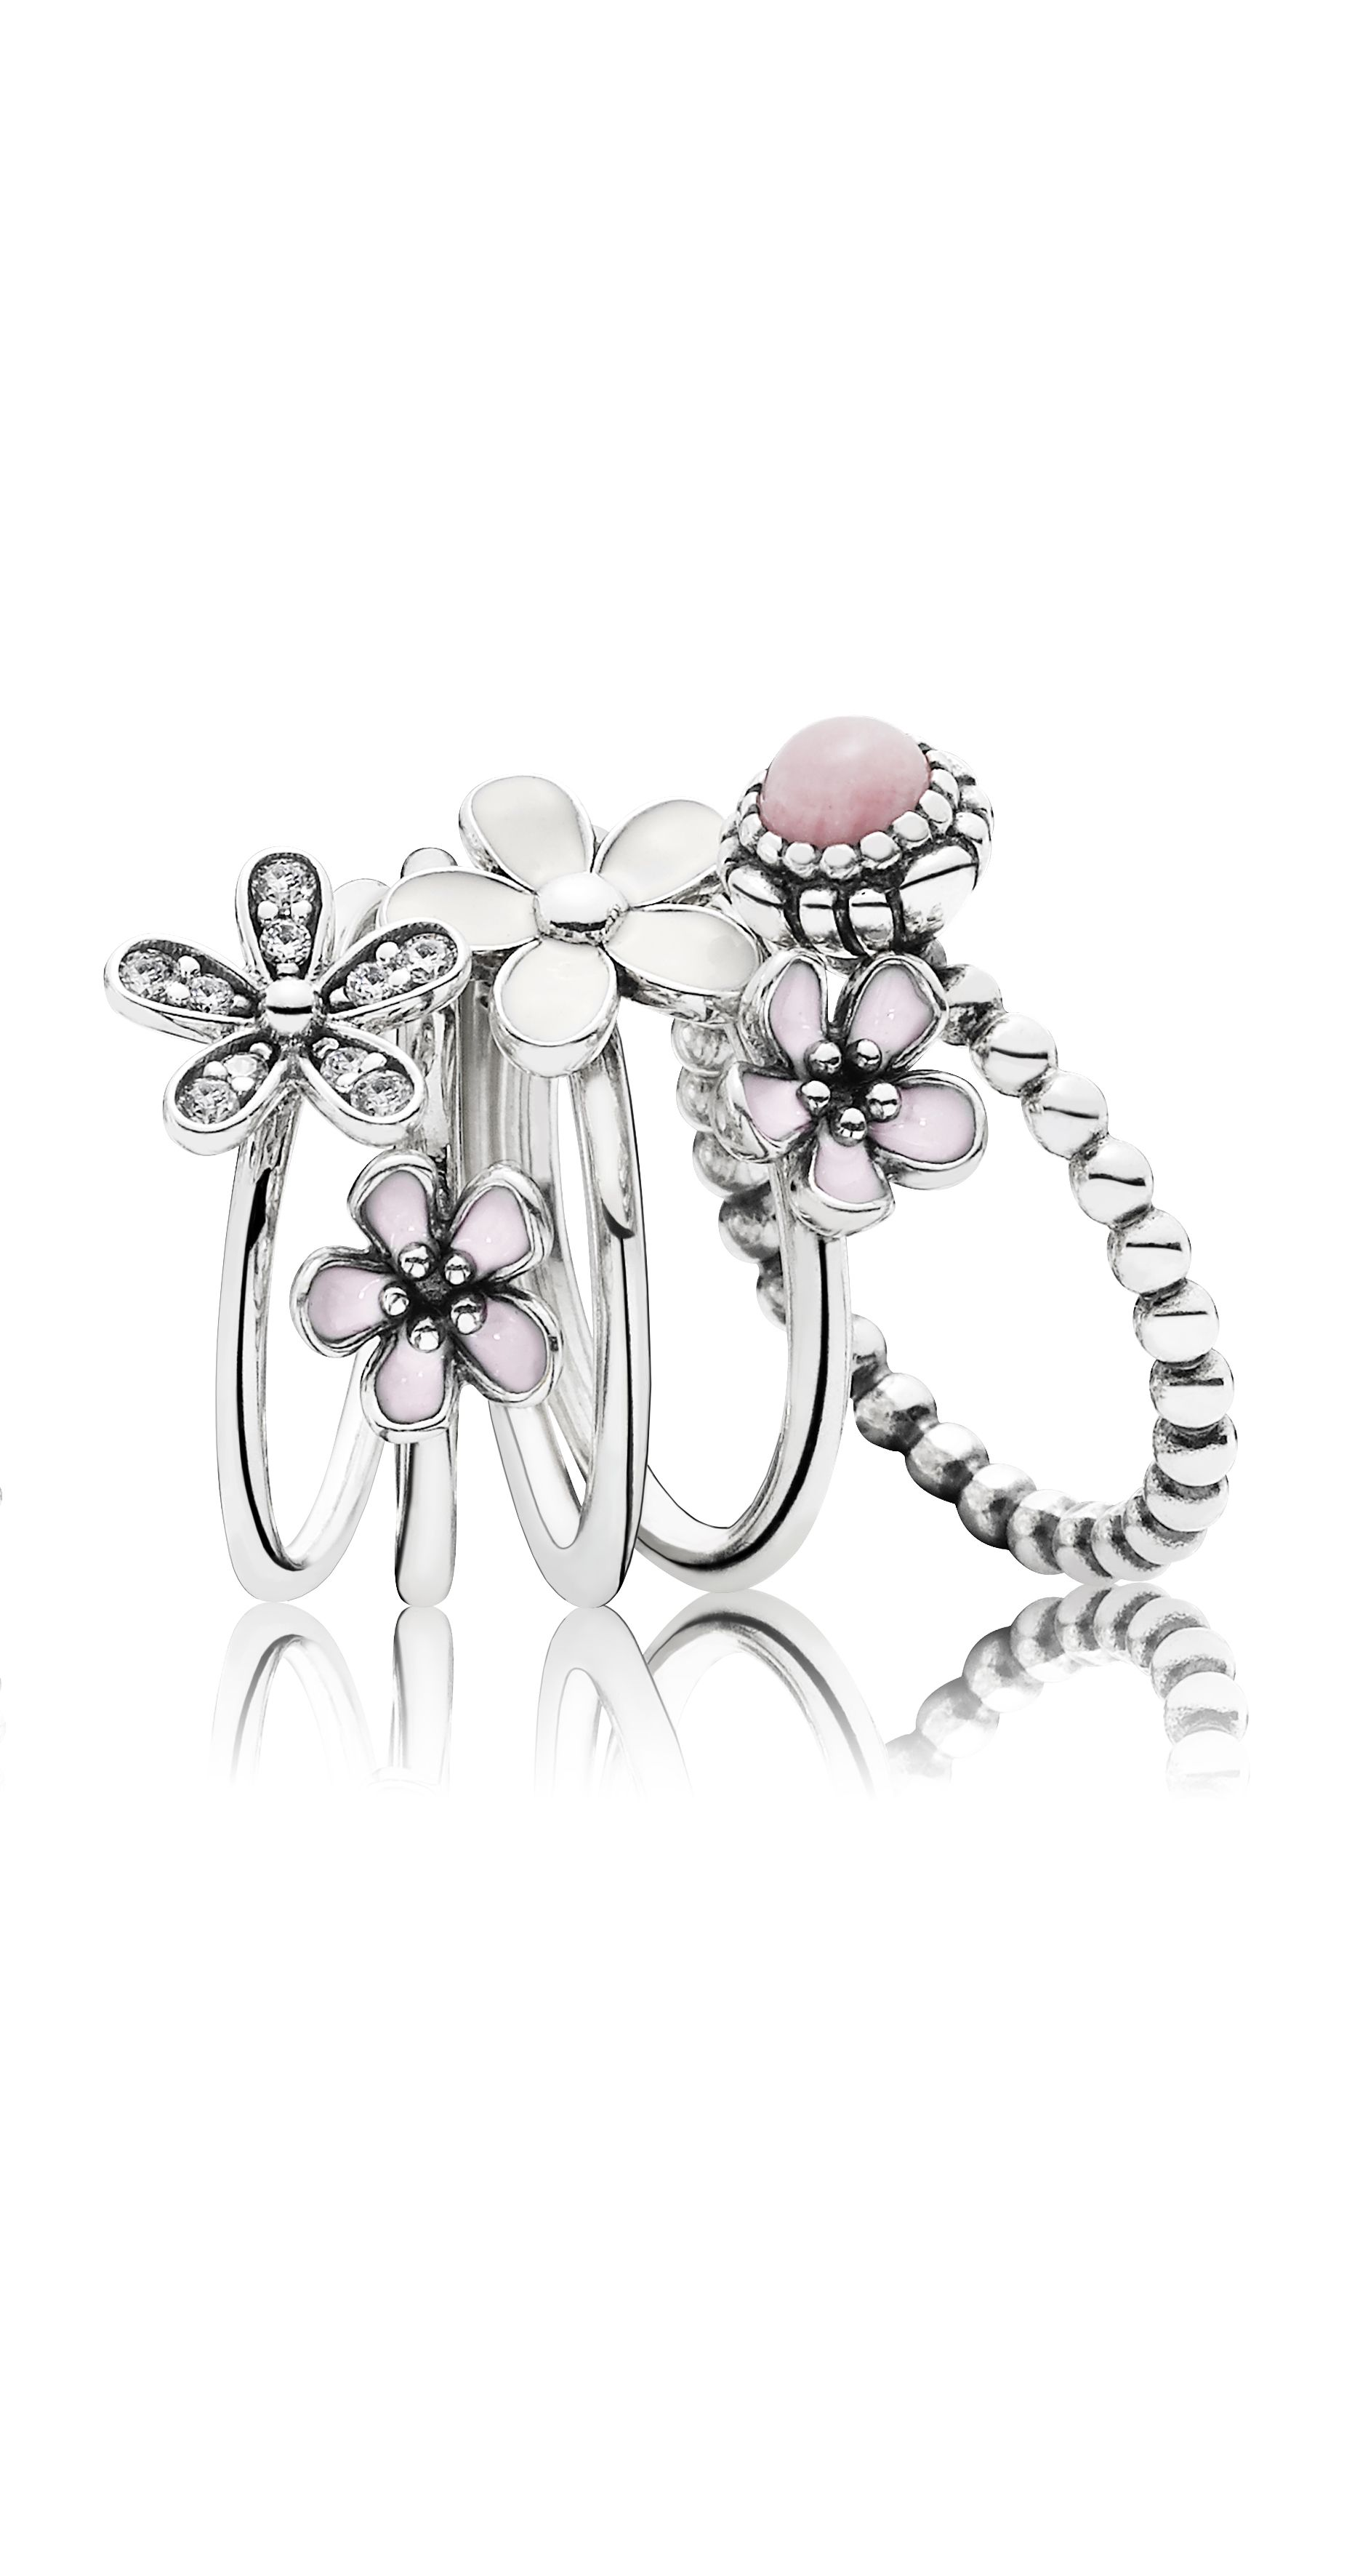 Make your outfit flourish with this blooming ring stack